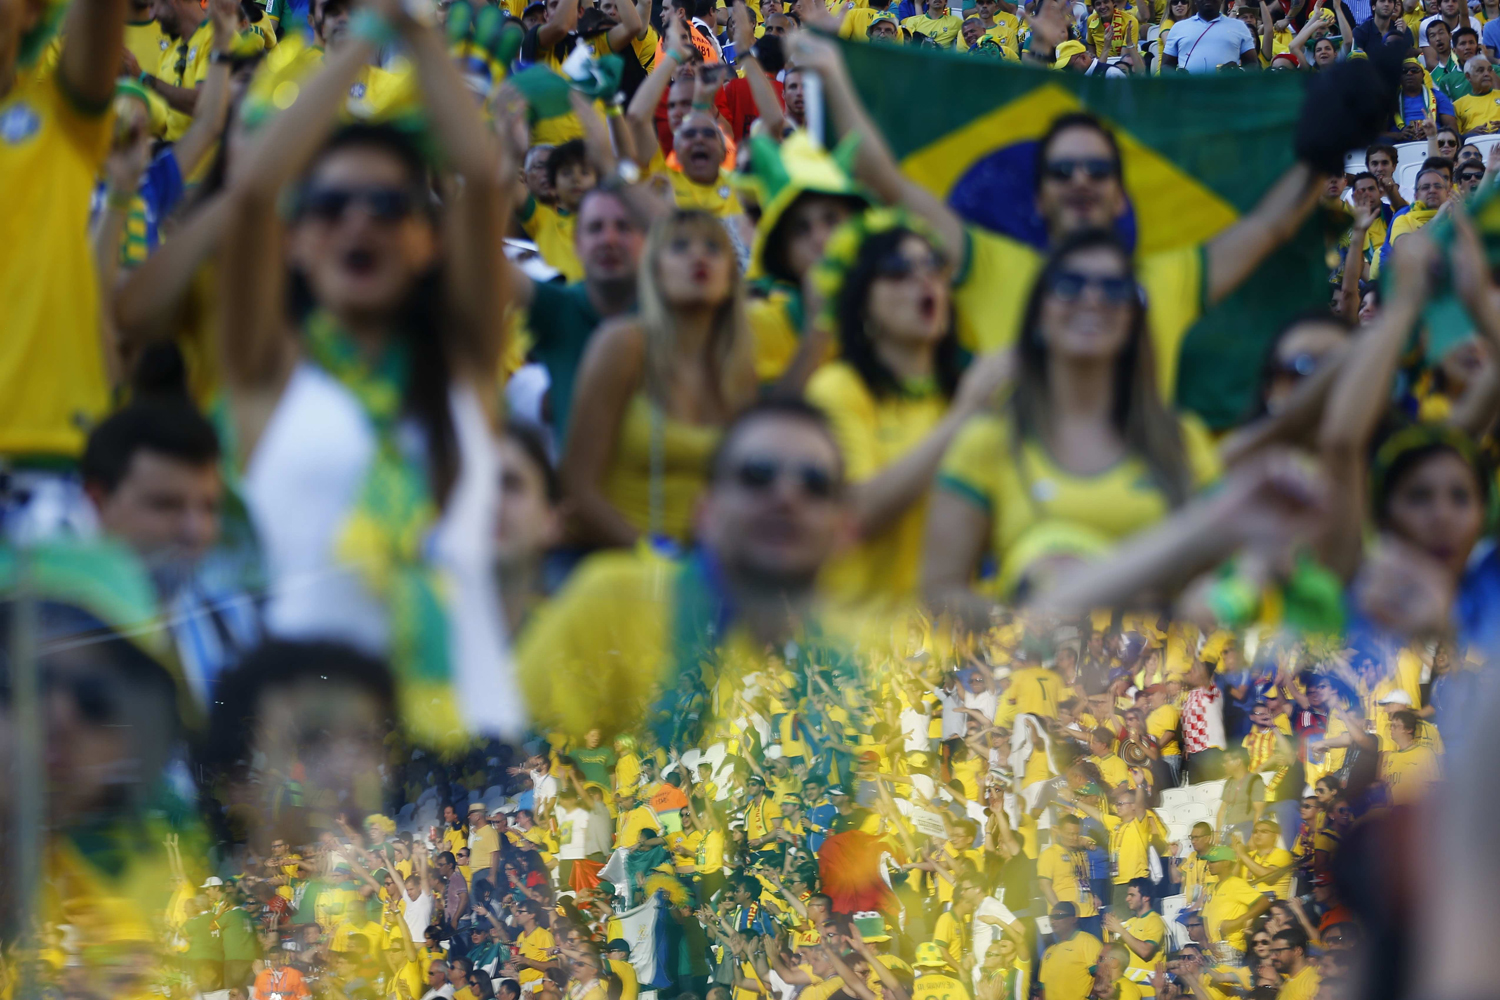 Jun. 12, 2014. A reflection of cheering fans is seen before the 2014 World Cup opening match between Brazil and Croatia at the Corinthians arena in Sao Paulo.